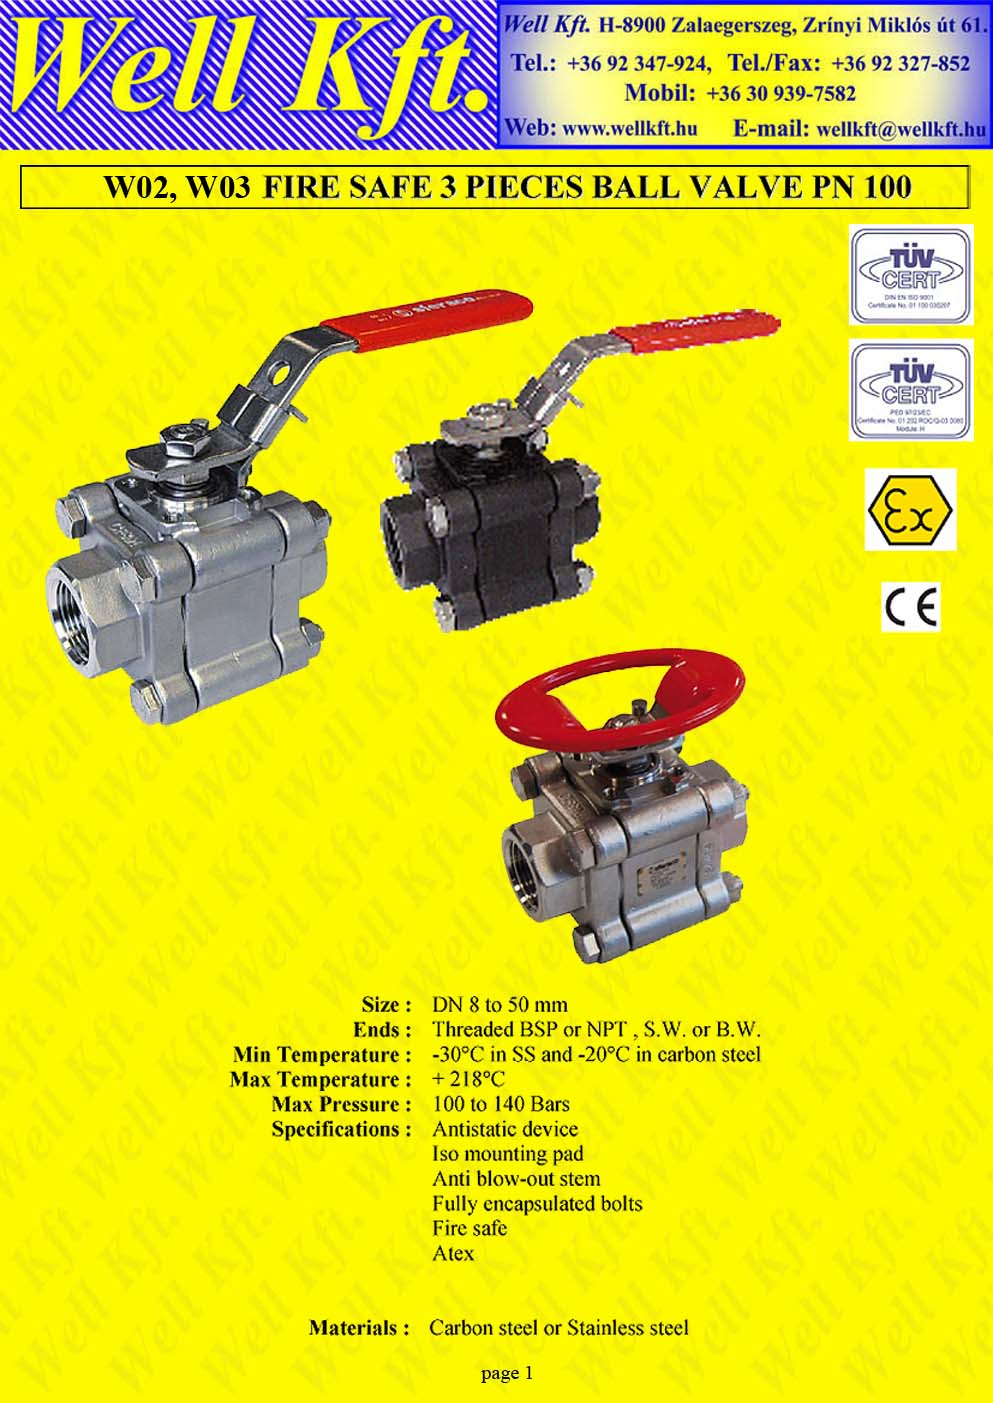 Fire safe 3 pieces ball valve ss., carbon steel, ISO pad PN 100-140 (1.)